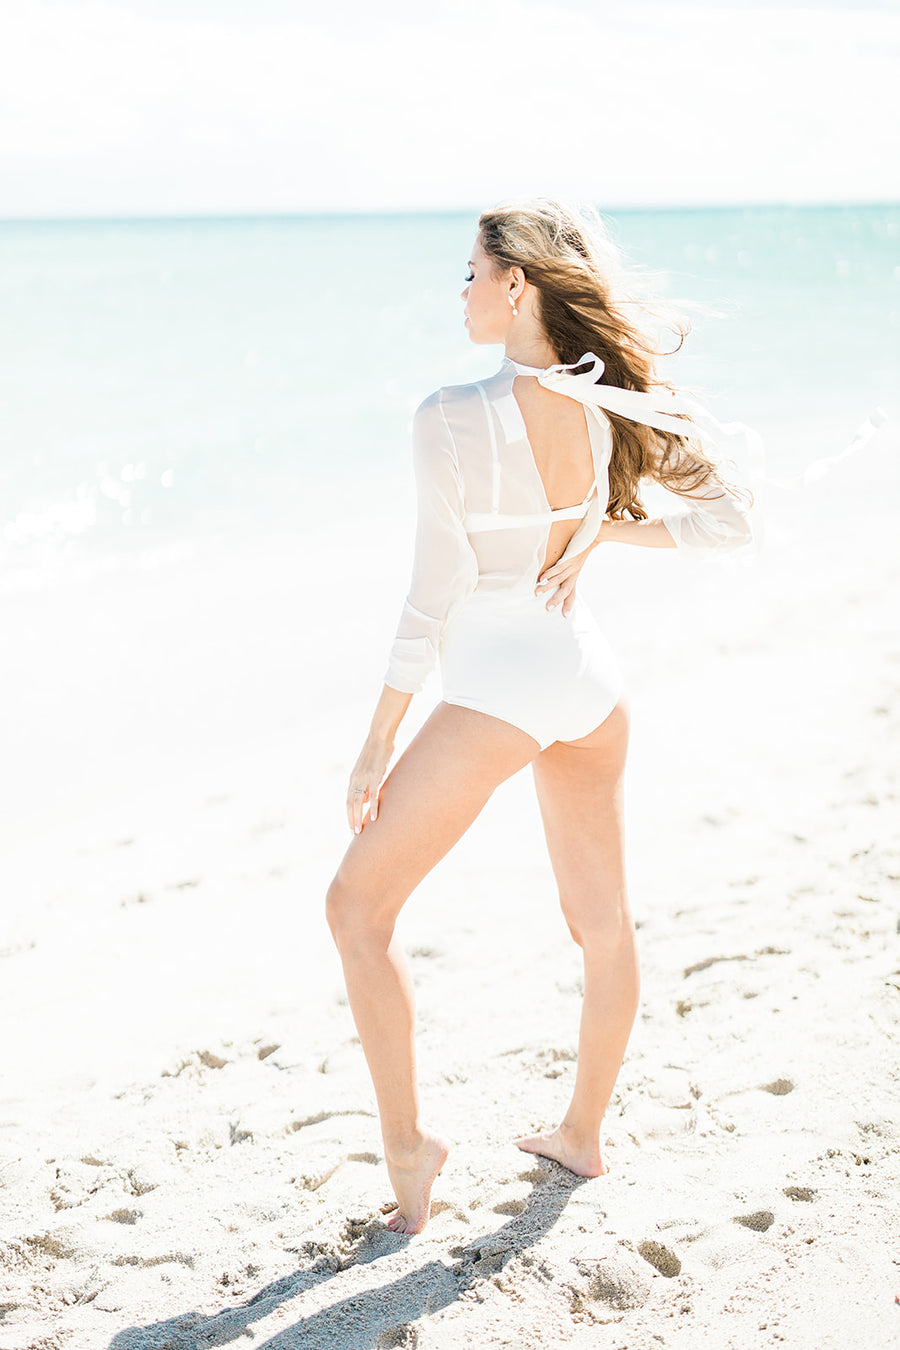 The Brigitte Bottom by Solid and Striped - The Beach Bride by Chic Parisien, a destination for beach weddings, bachelorettes and honeymoons